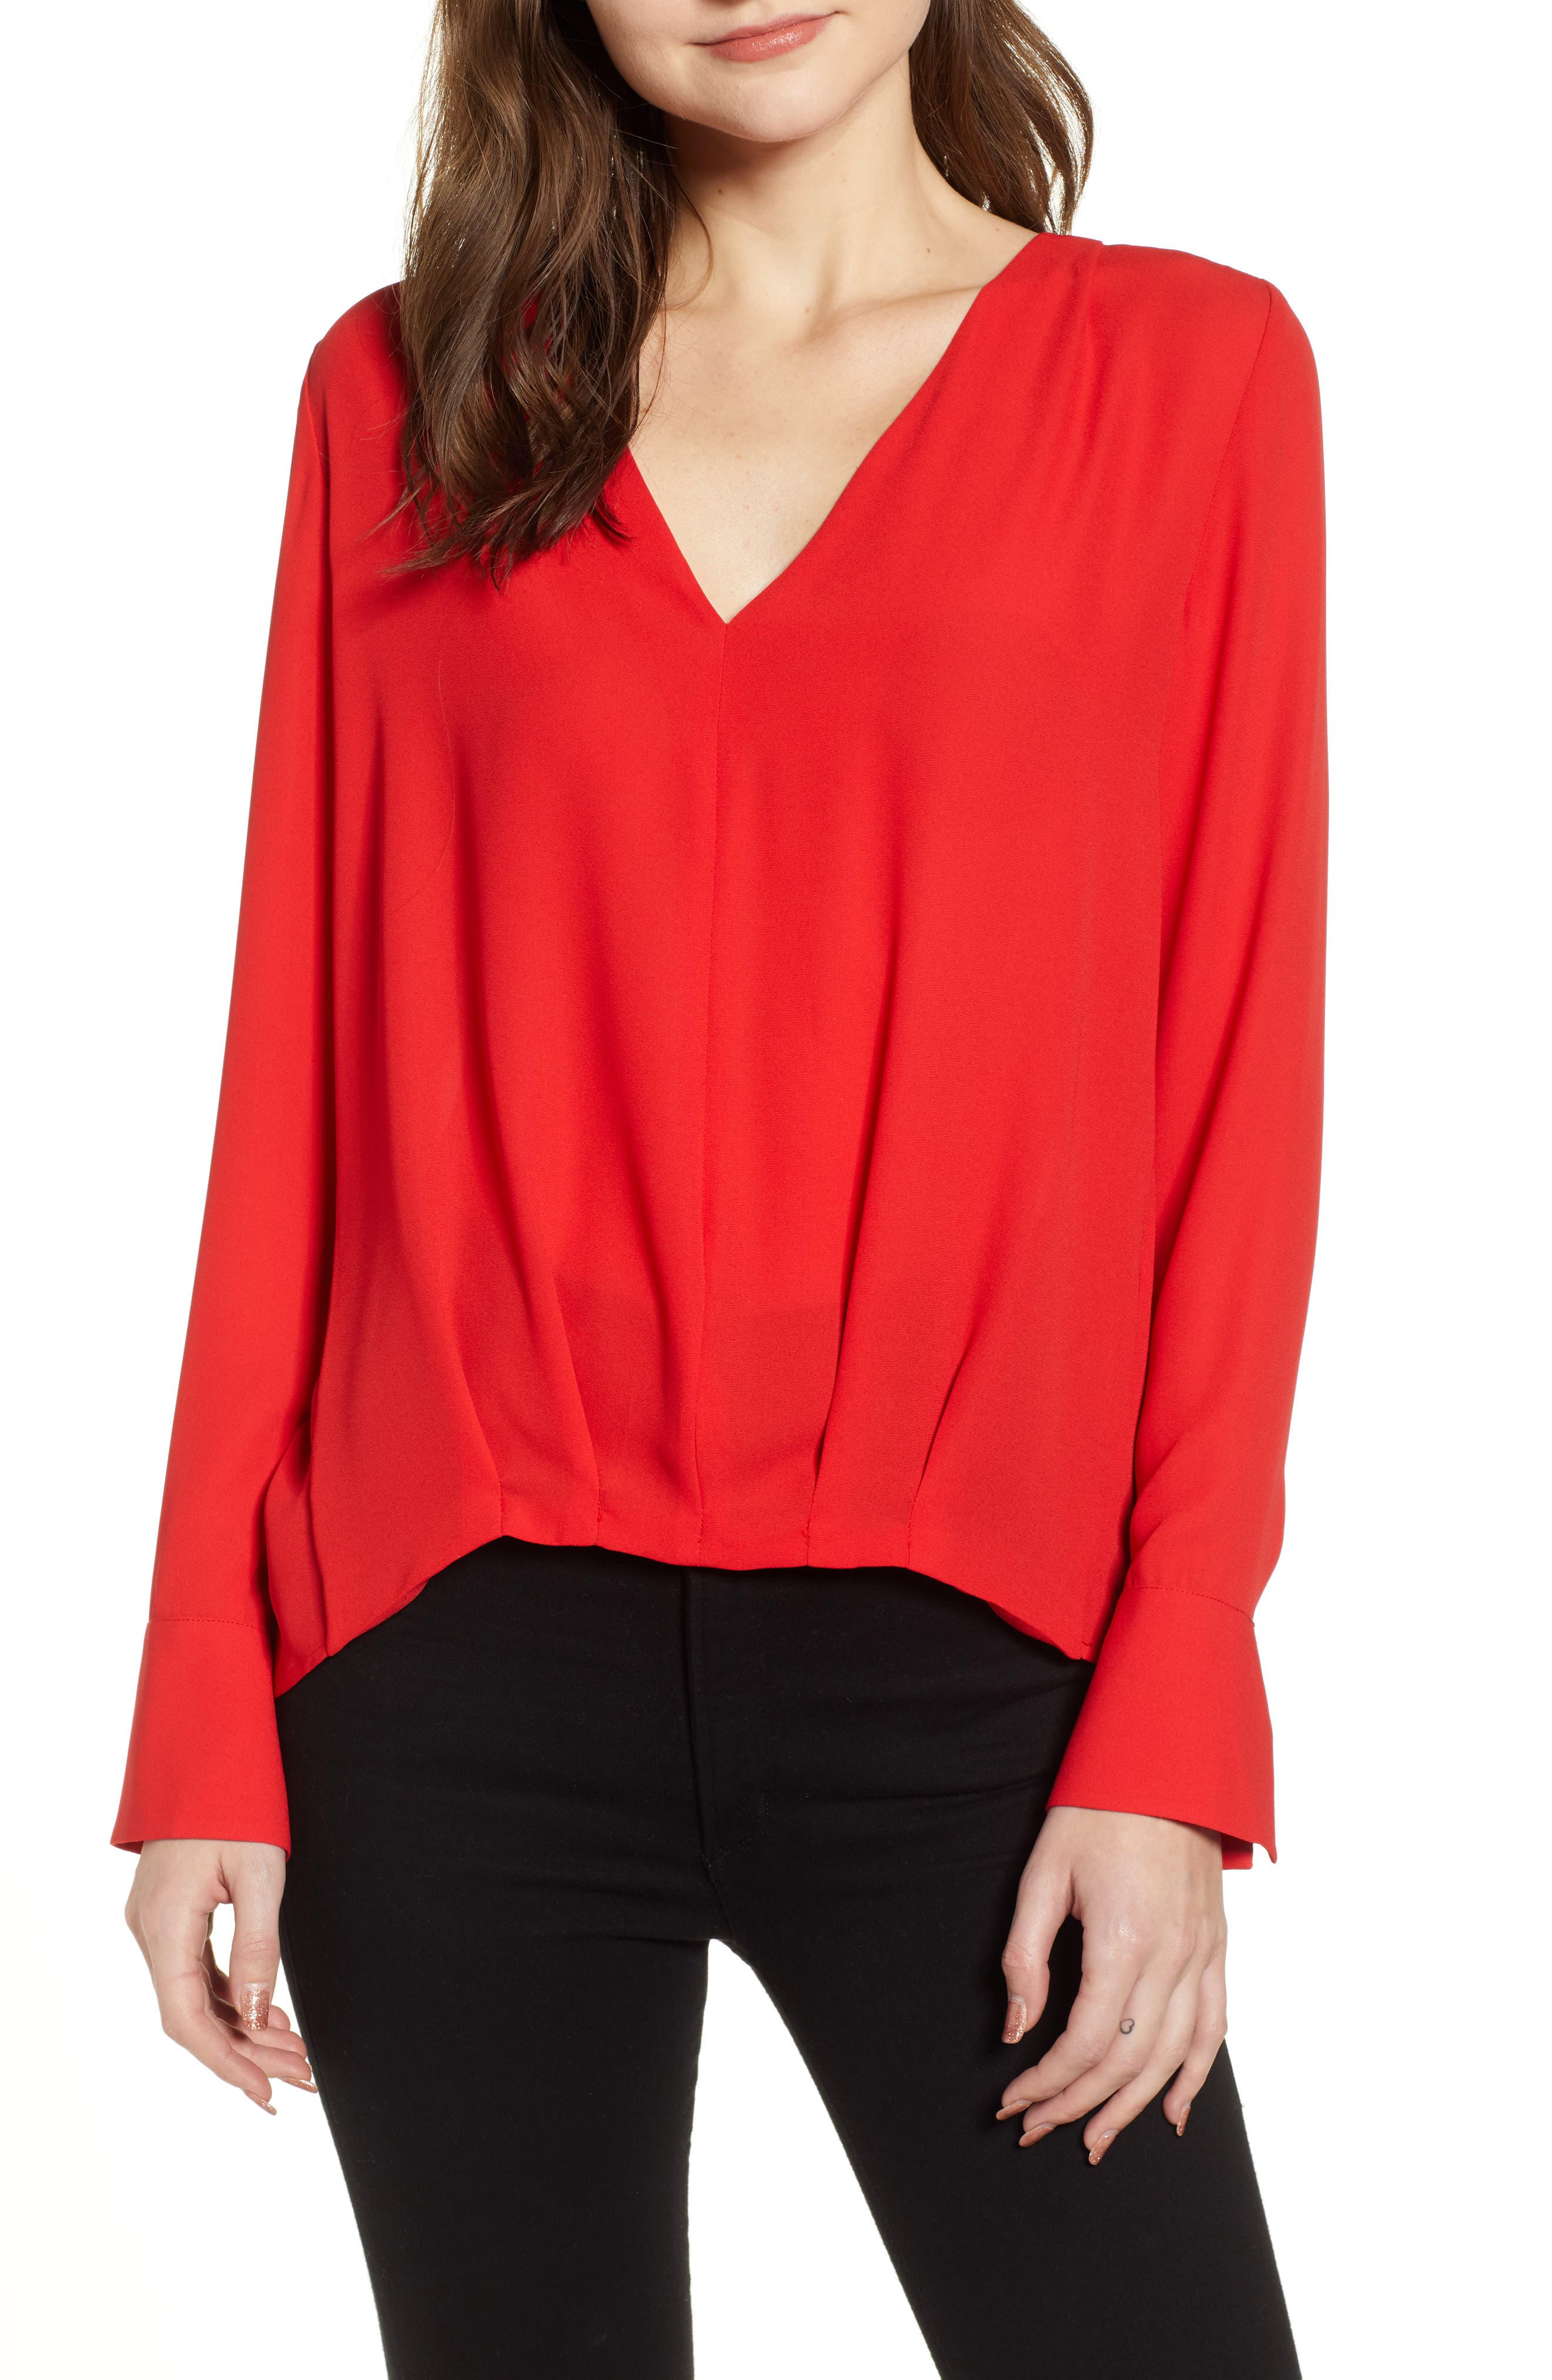 CHELSEA28 Tucked Top, Main, color, RED CHINOISE